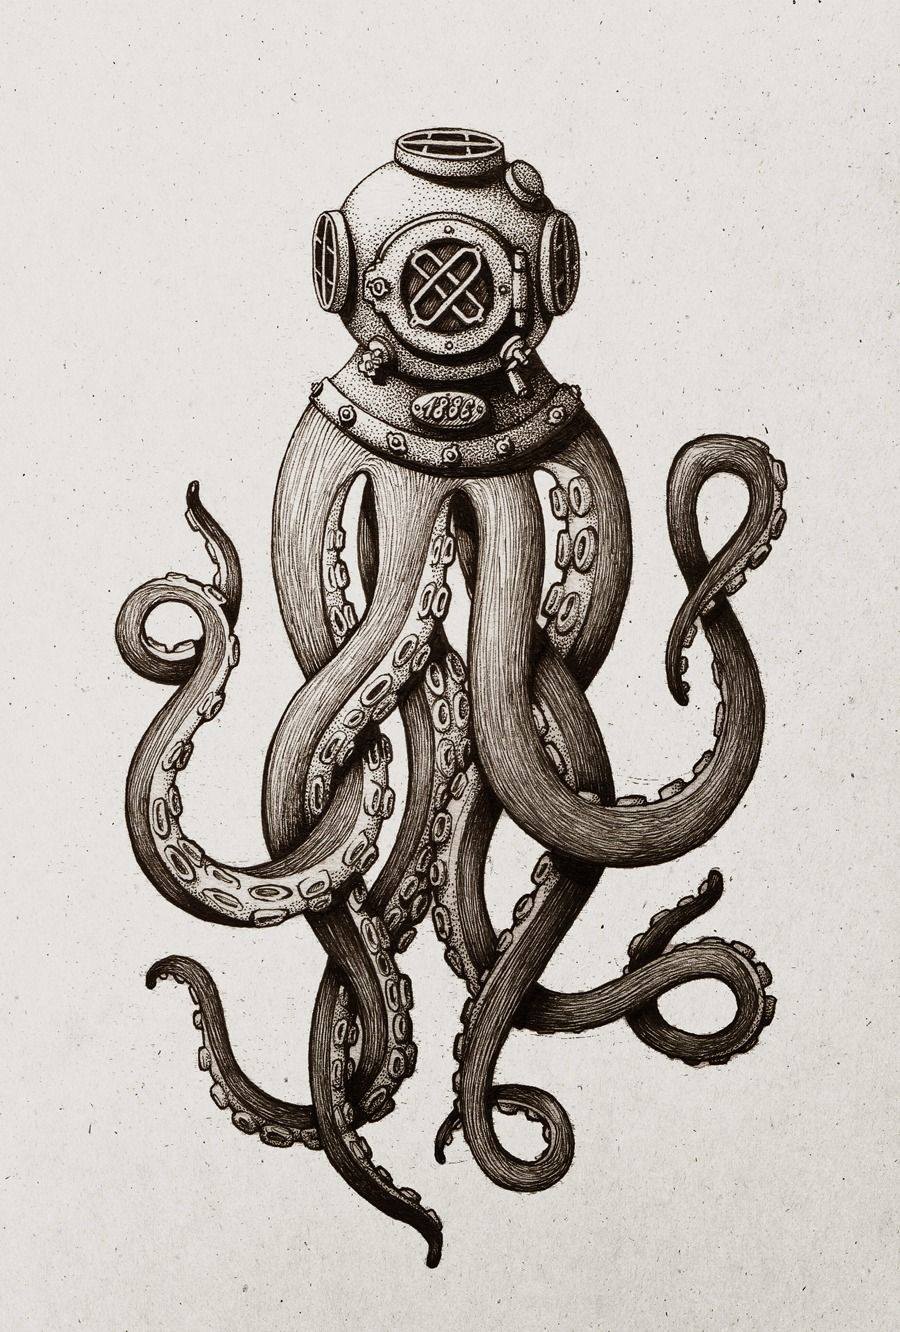 Ink drawing of an octopus an antique diving helmet. | Artistic ...